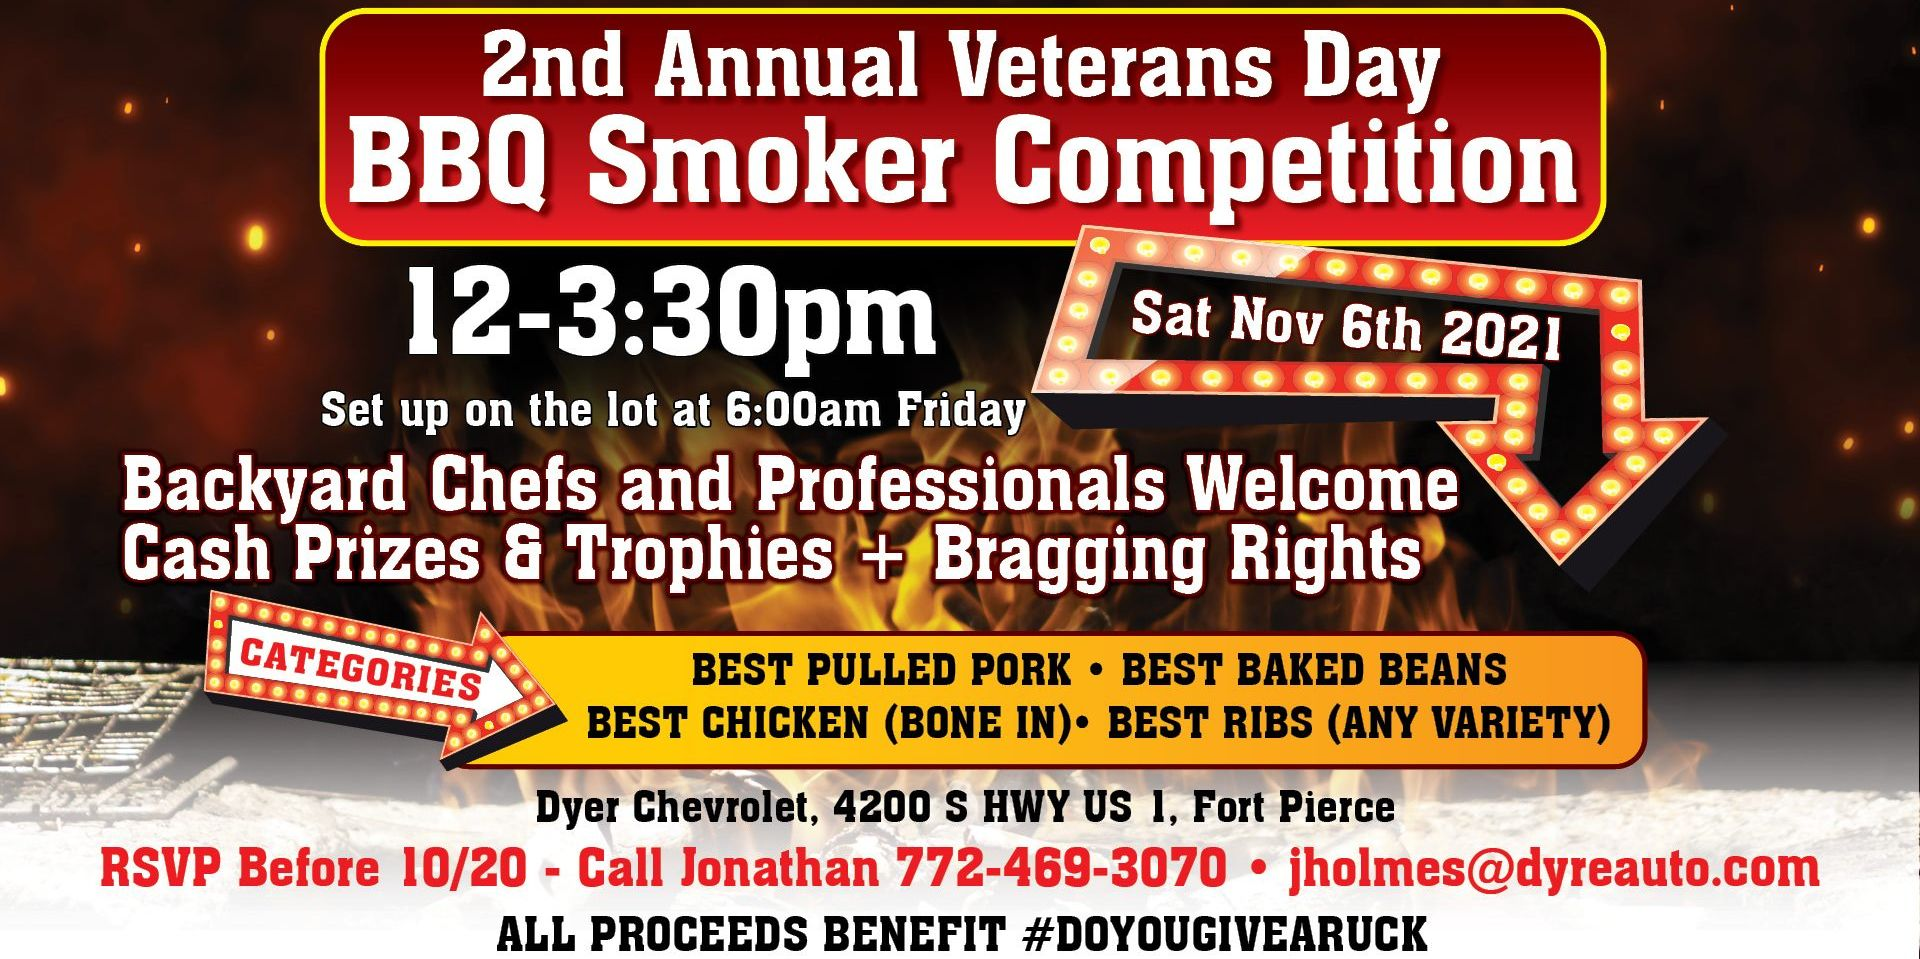 2nd Annual Veterans Day BBQ Smoker Competition